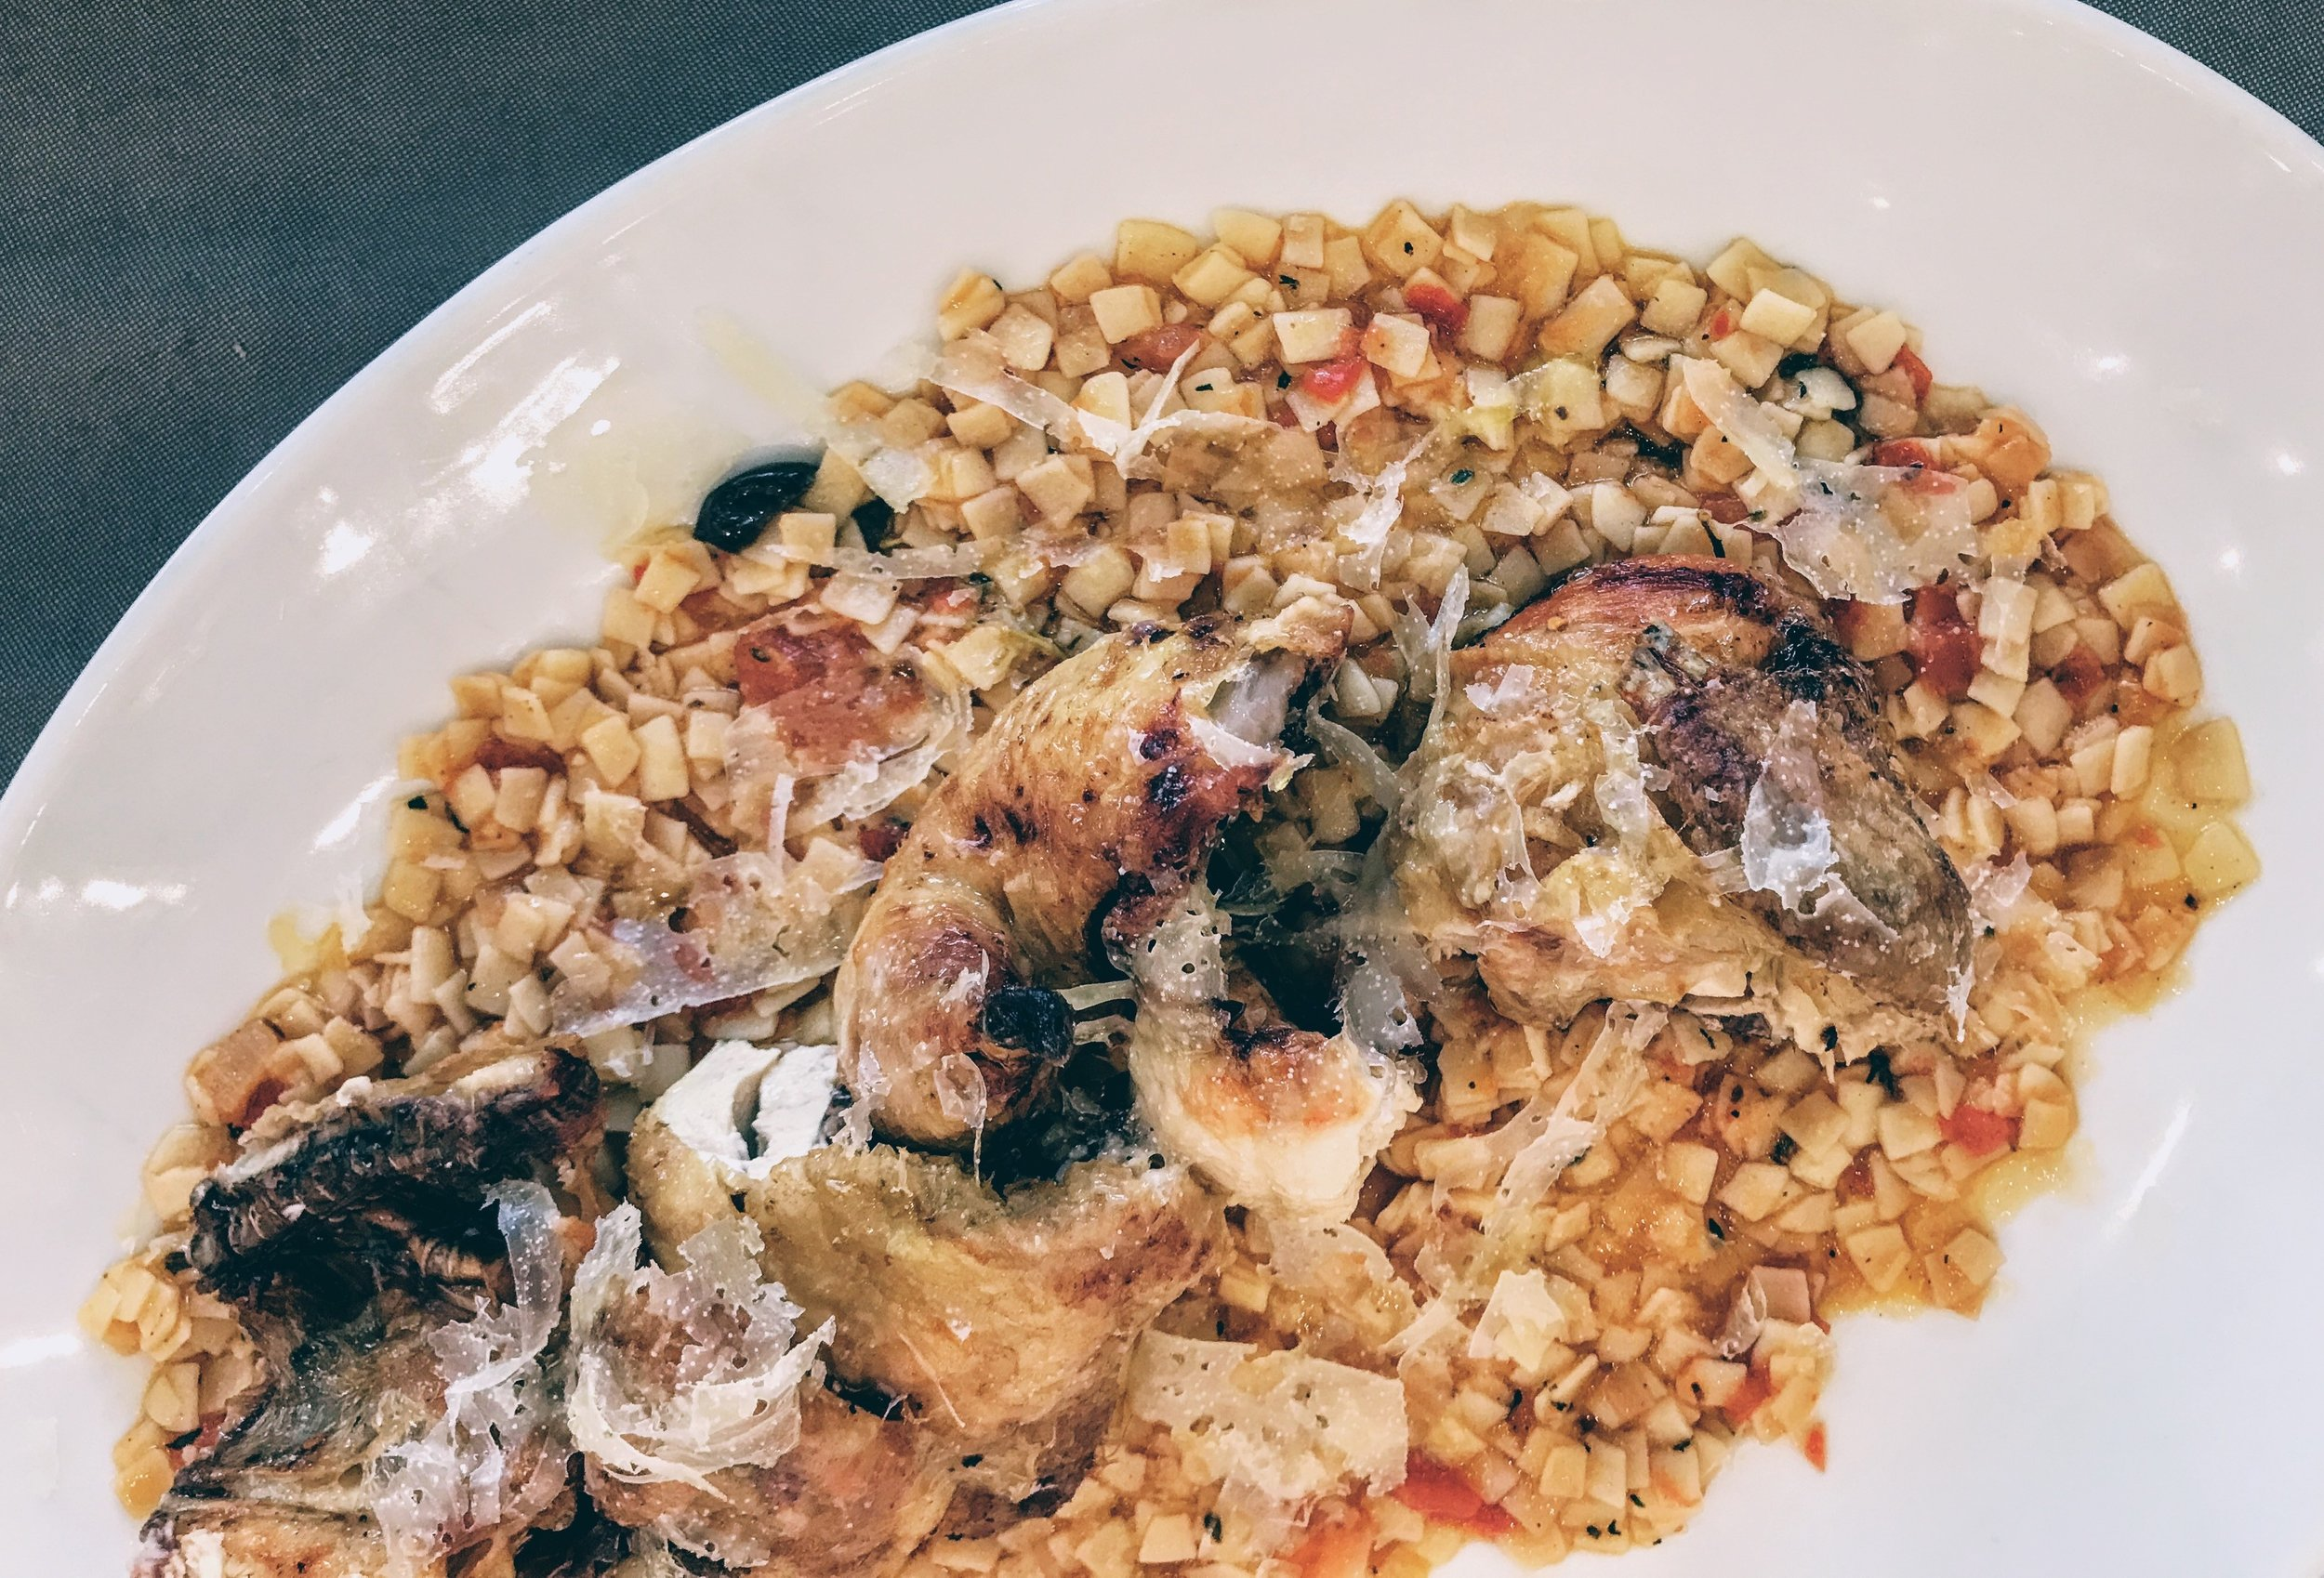 Athens: wise Greek cuisine at Cookoovaya